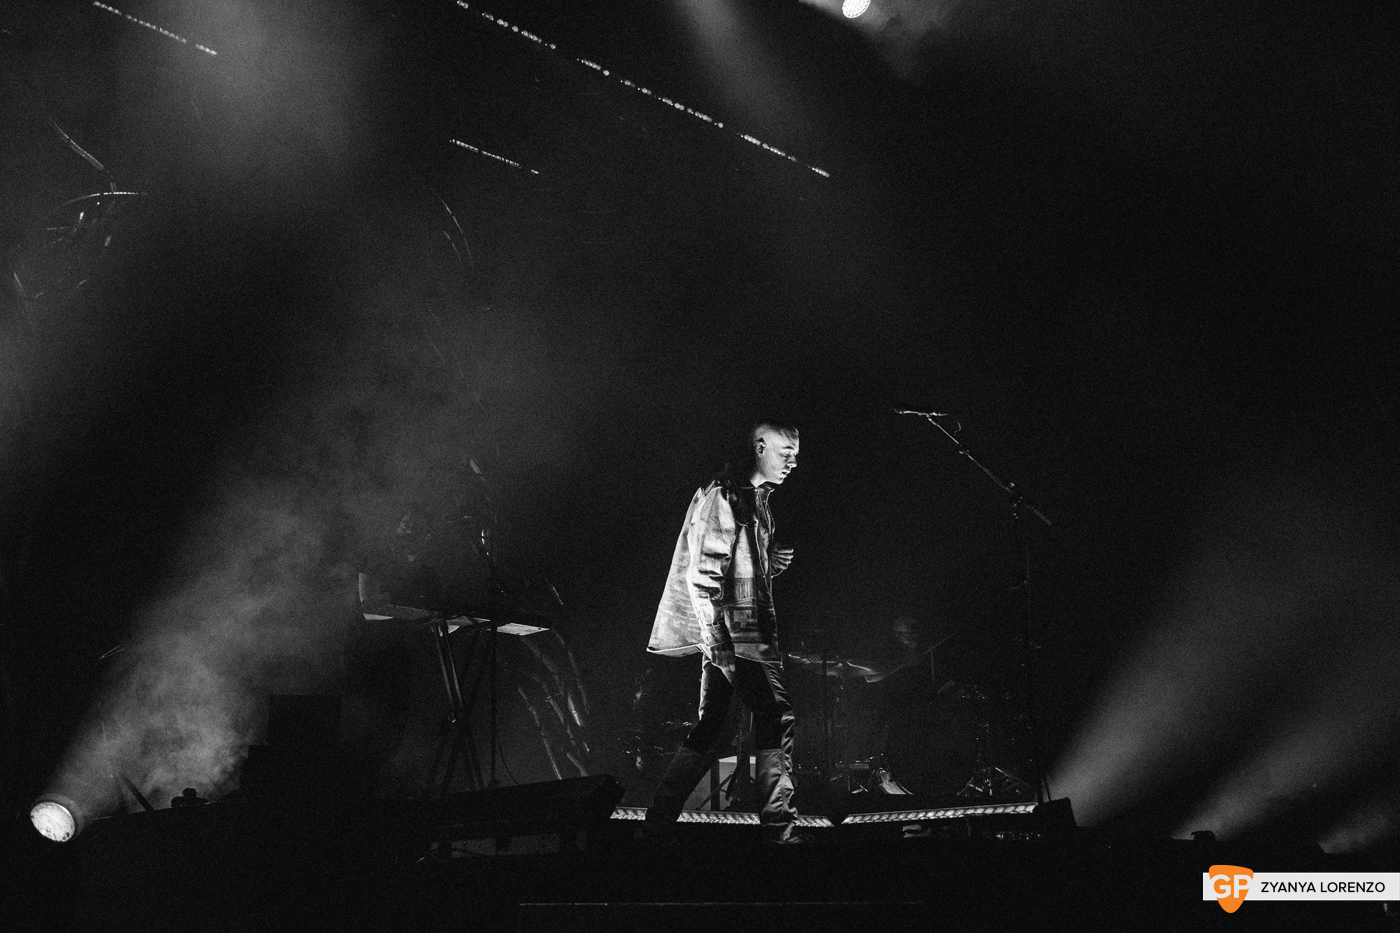 Dermot Kennedy live at the 3Arena, Dublin. Photographed by Zyanya Lorenzo.